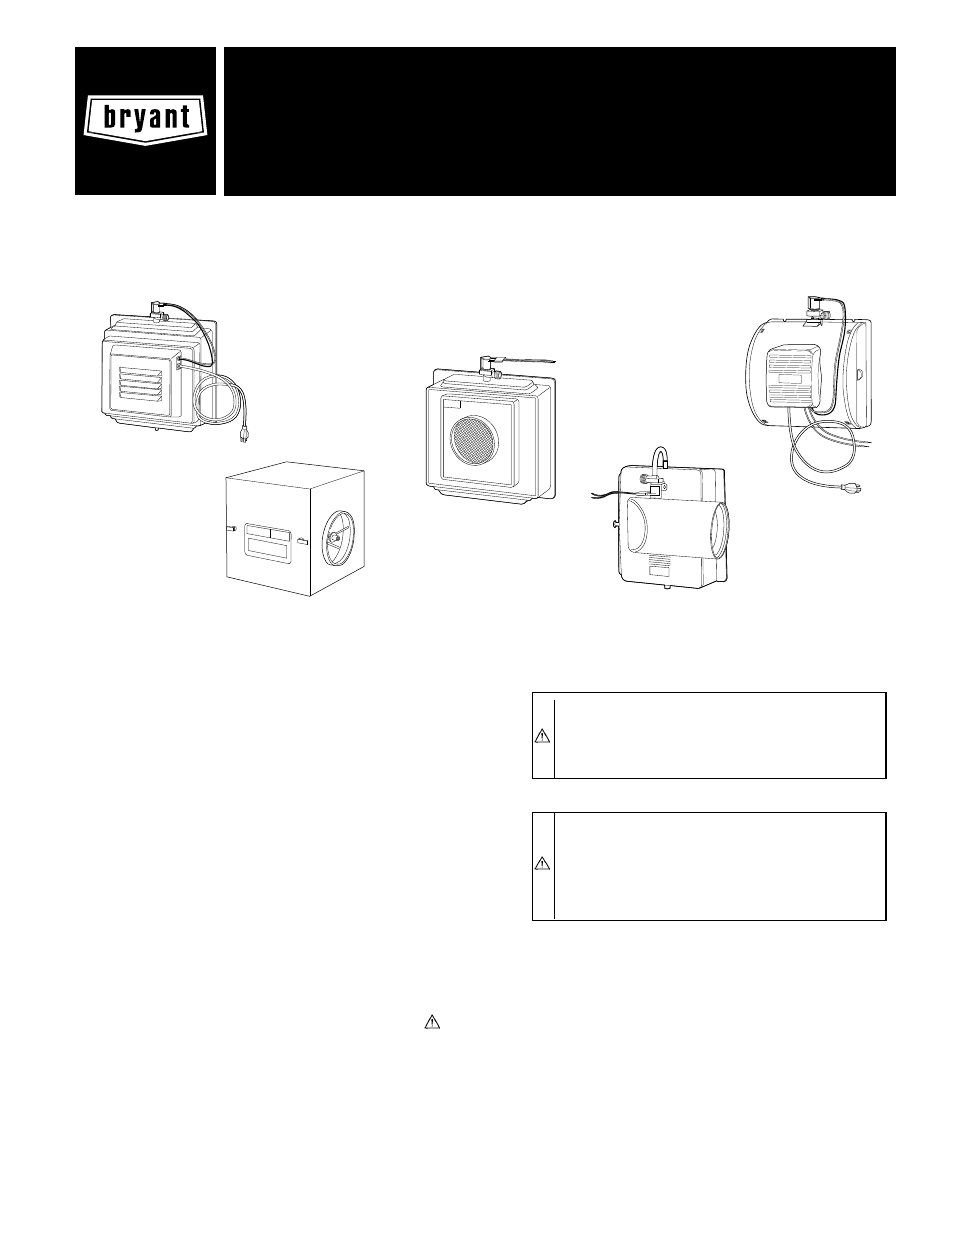 Bryant Hum 56 1 User Manual 12 Pages